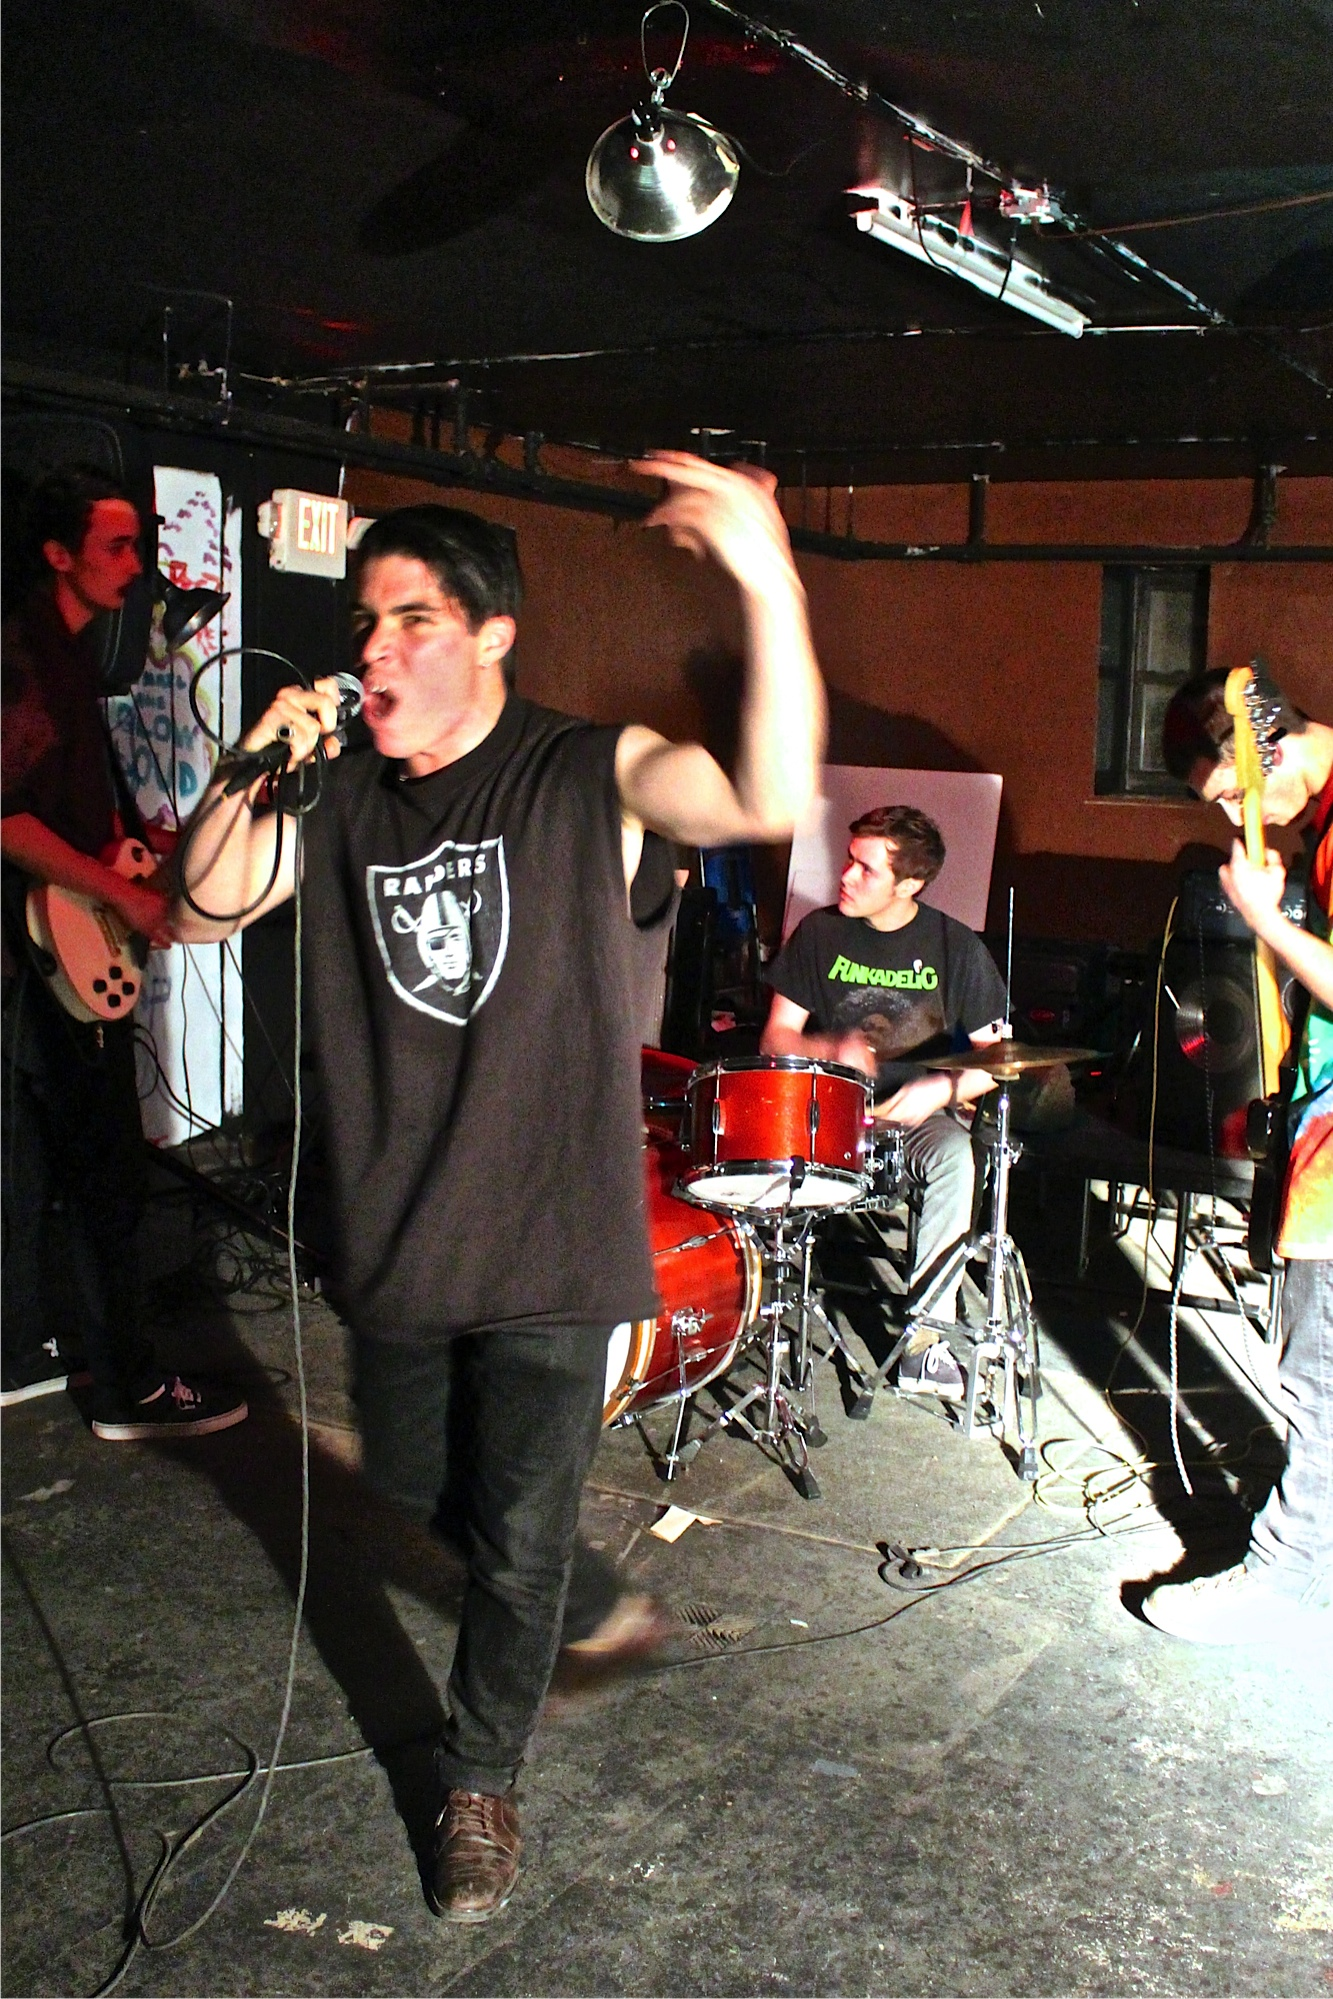 Nachi Conde-Farley '14, Will Peterson '14, Nate Ostiller '14, and Gabe Salomon '17 perform at the Worker's Justice Show on March 7